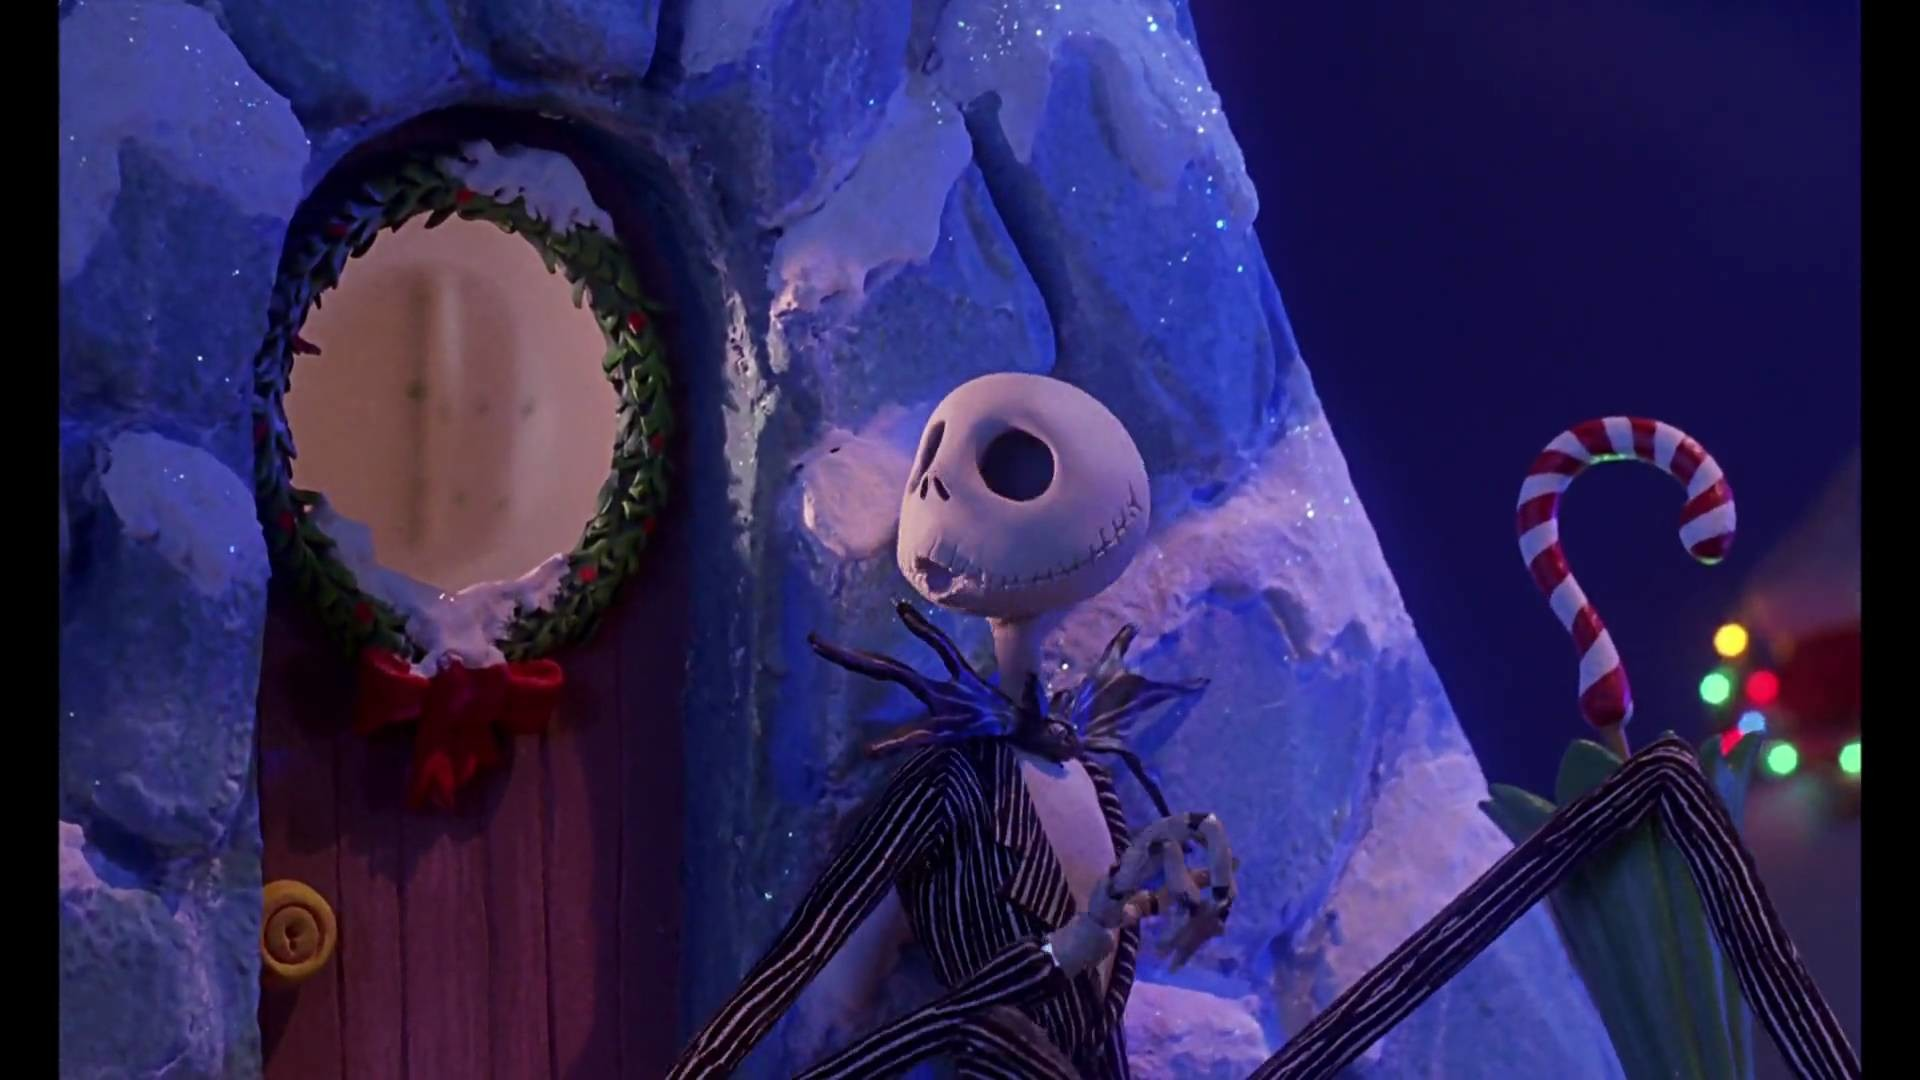 Nightmare Before Christmas Wallpaper HD (75+ images)